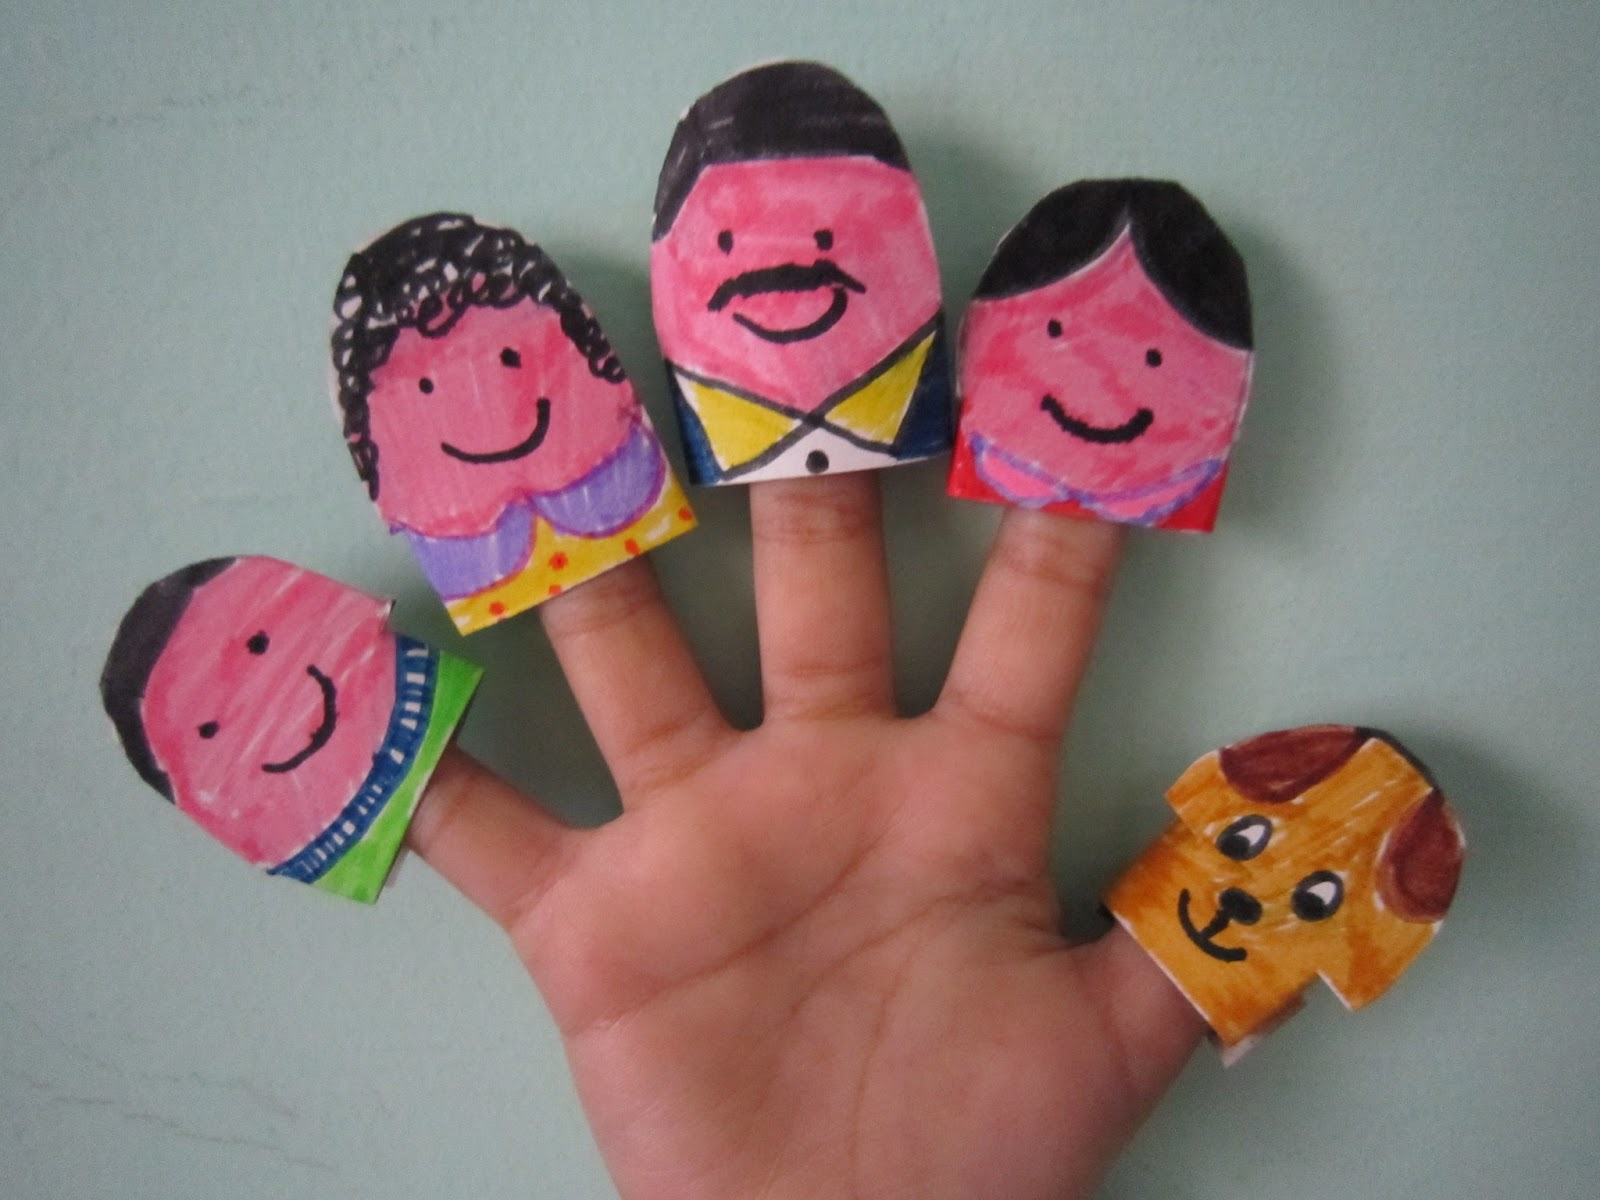 paper finger puppets Find and save ideas about finger puppets on pinterest | see more ideas about felt finger puppets, felt puppets and hand puppets.